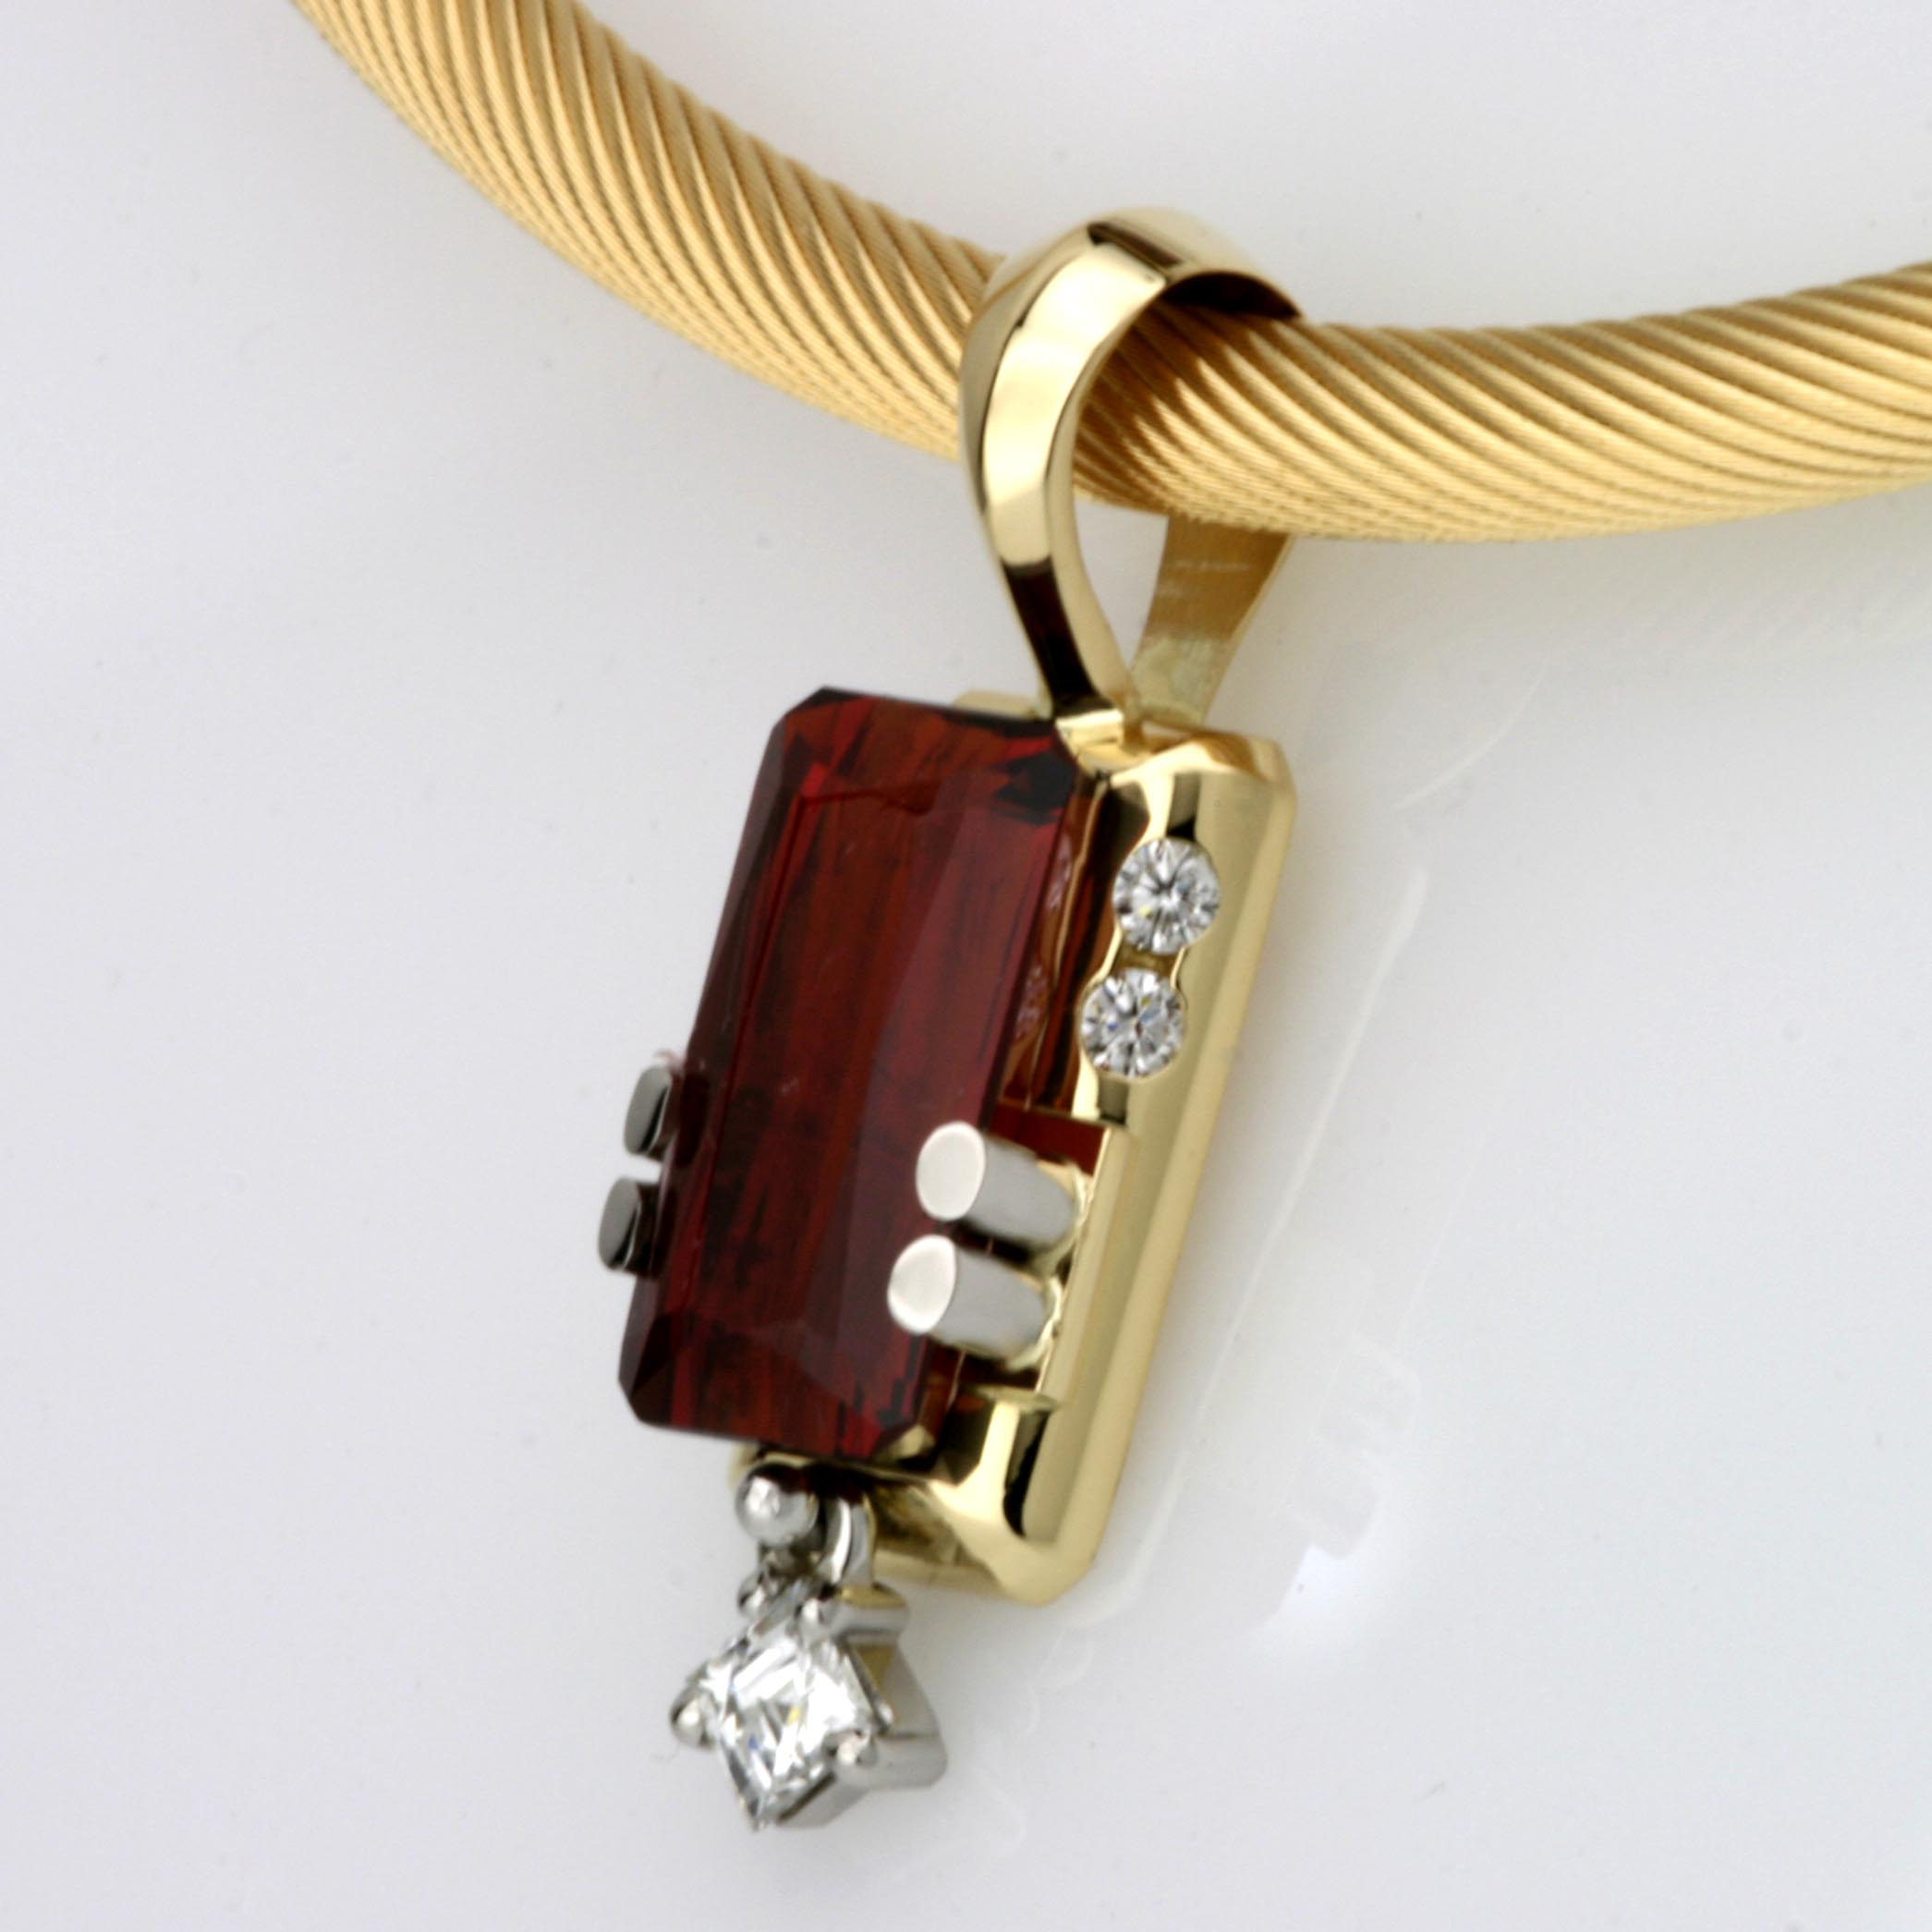 Handmade Spessartite Pendant with a Tycoon Cut Diamond & Brilliant Cut Diamonds set in Palladium & Yellow Gold